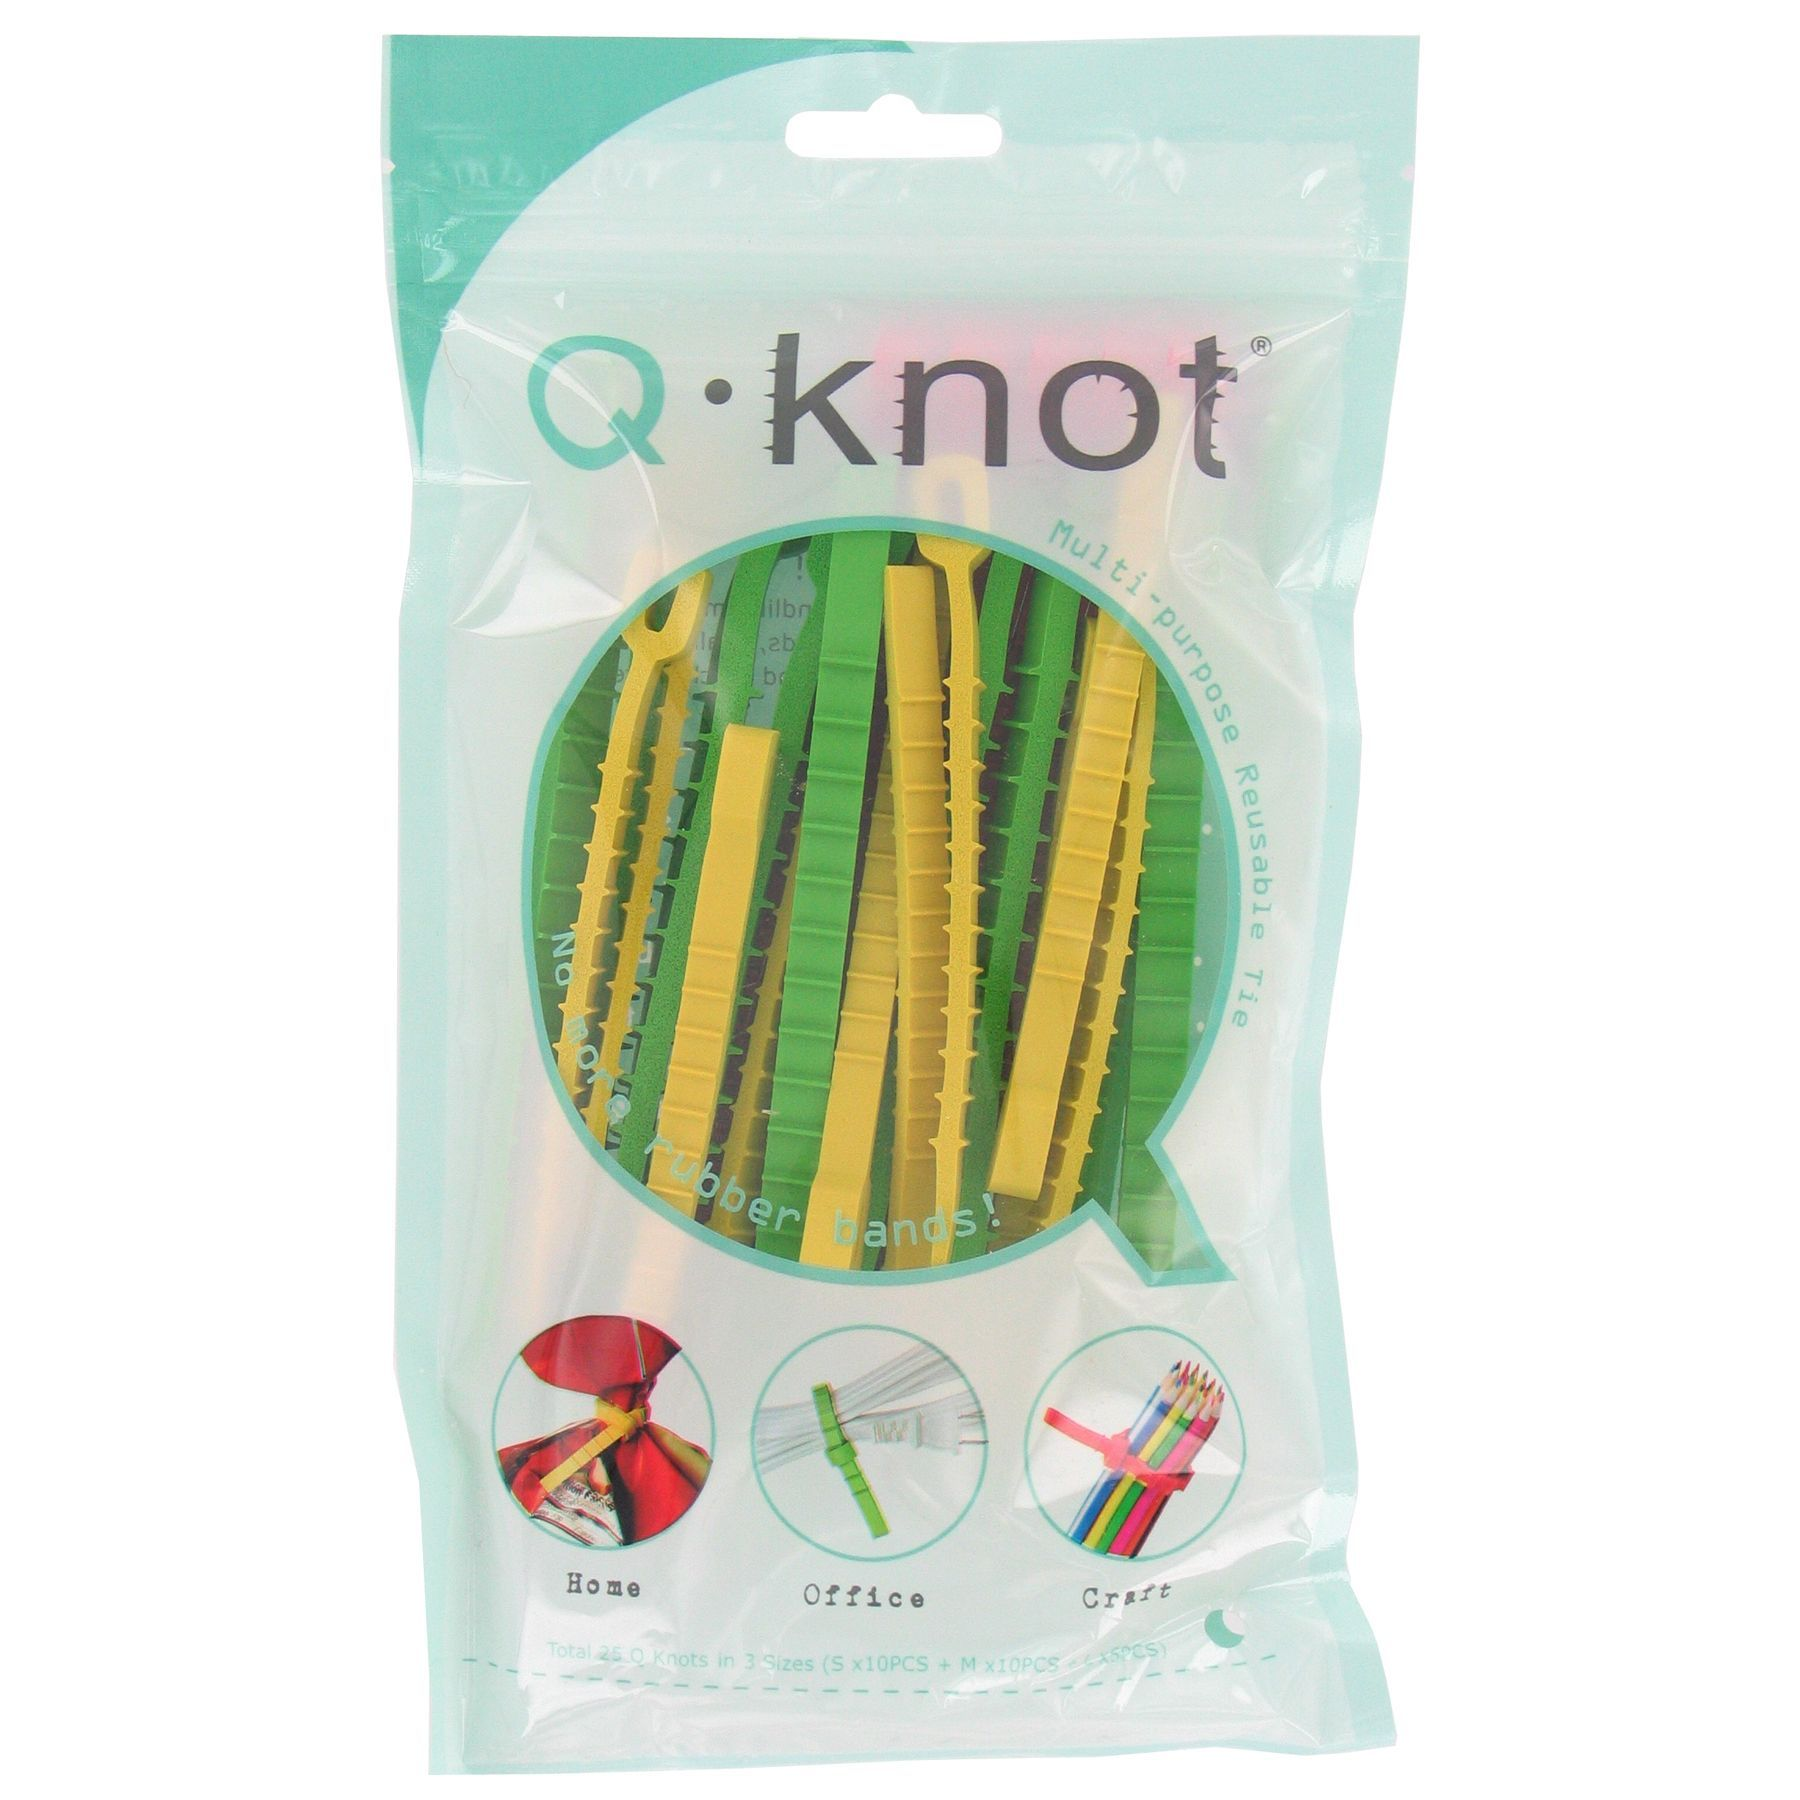 Q Knot UTW-QK25-01 Q Knot Multi Purpose Reusable Ties 25-count by UT Wire. Organize  CordsCable ...